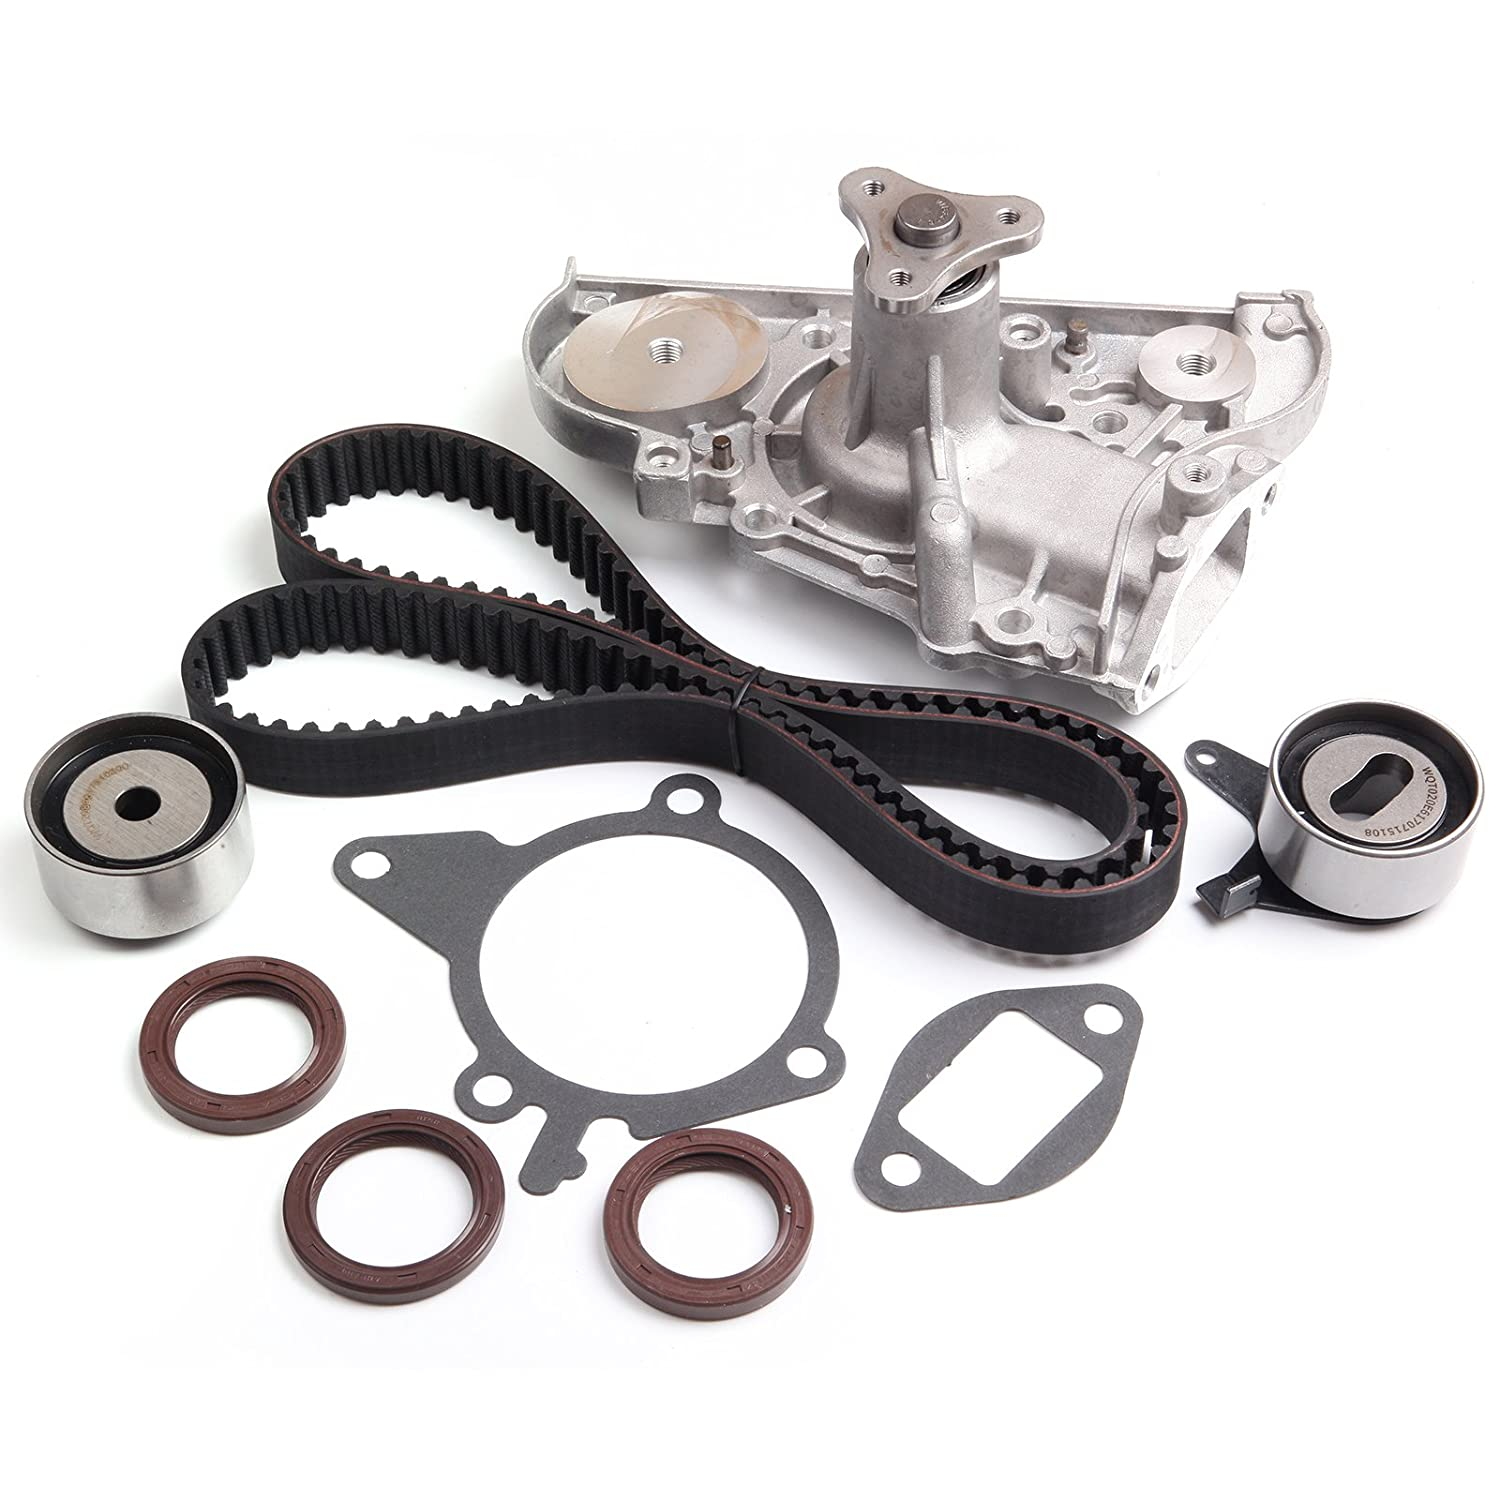 SCITOO Timing Belt/Water Pump fit 90-93 Mazda Miata 1.6L 91-96 Ford Escort 1.8L L4 110303-5206-1530181